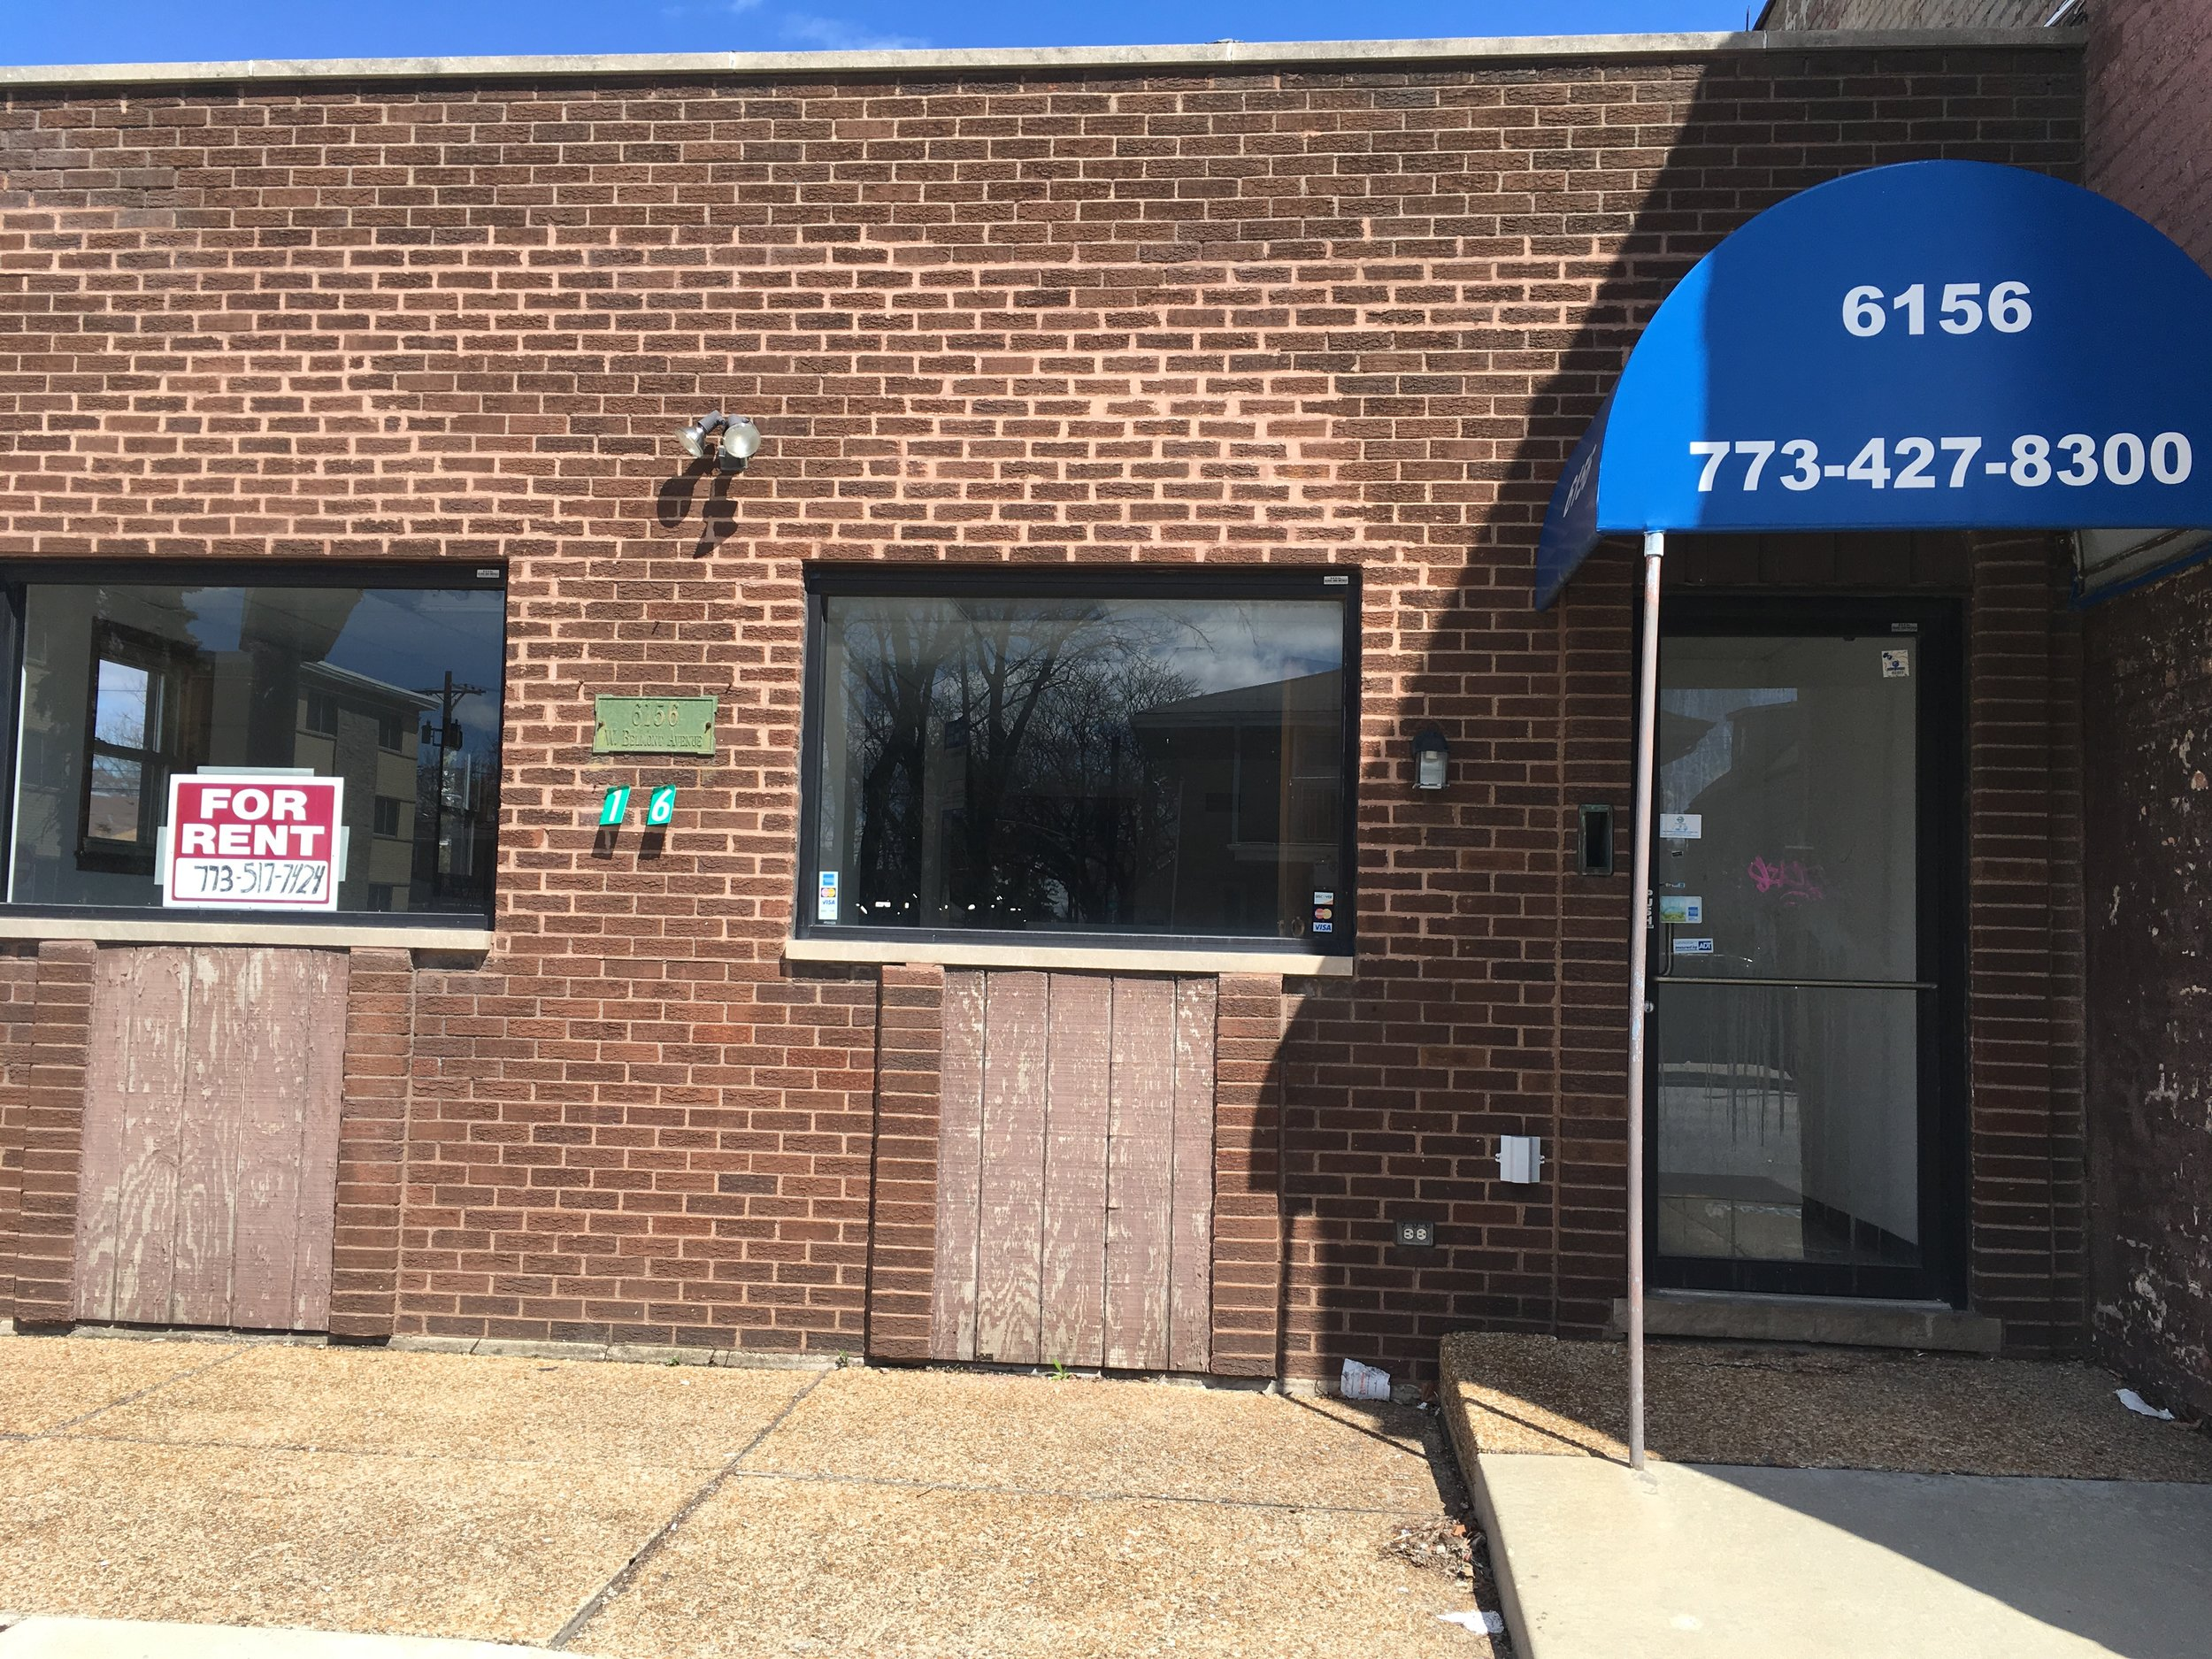 6156 W. Belmont Ave    Call  773-517-7424